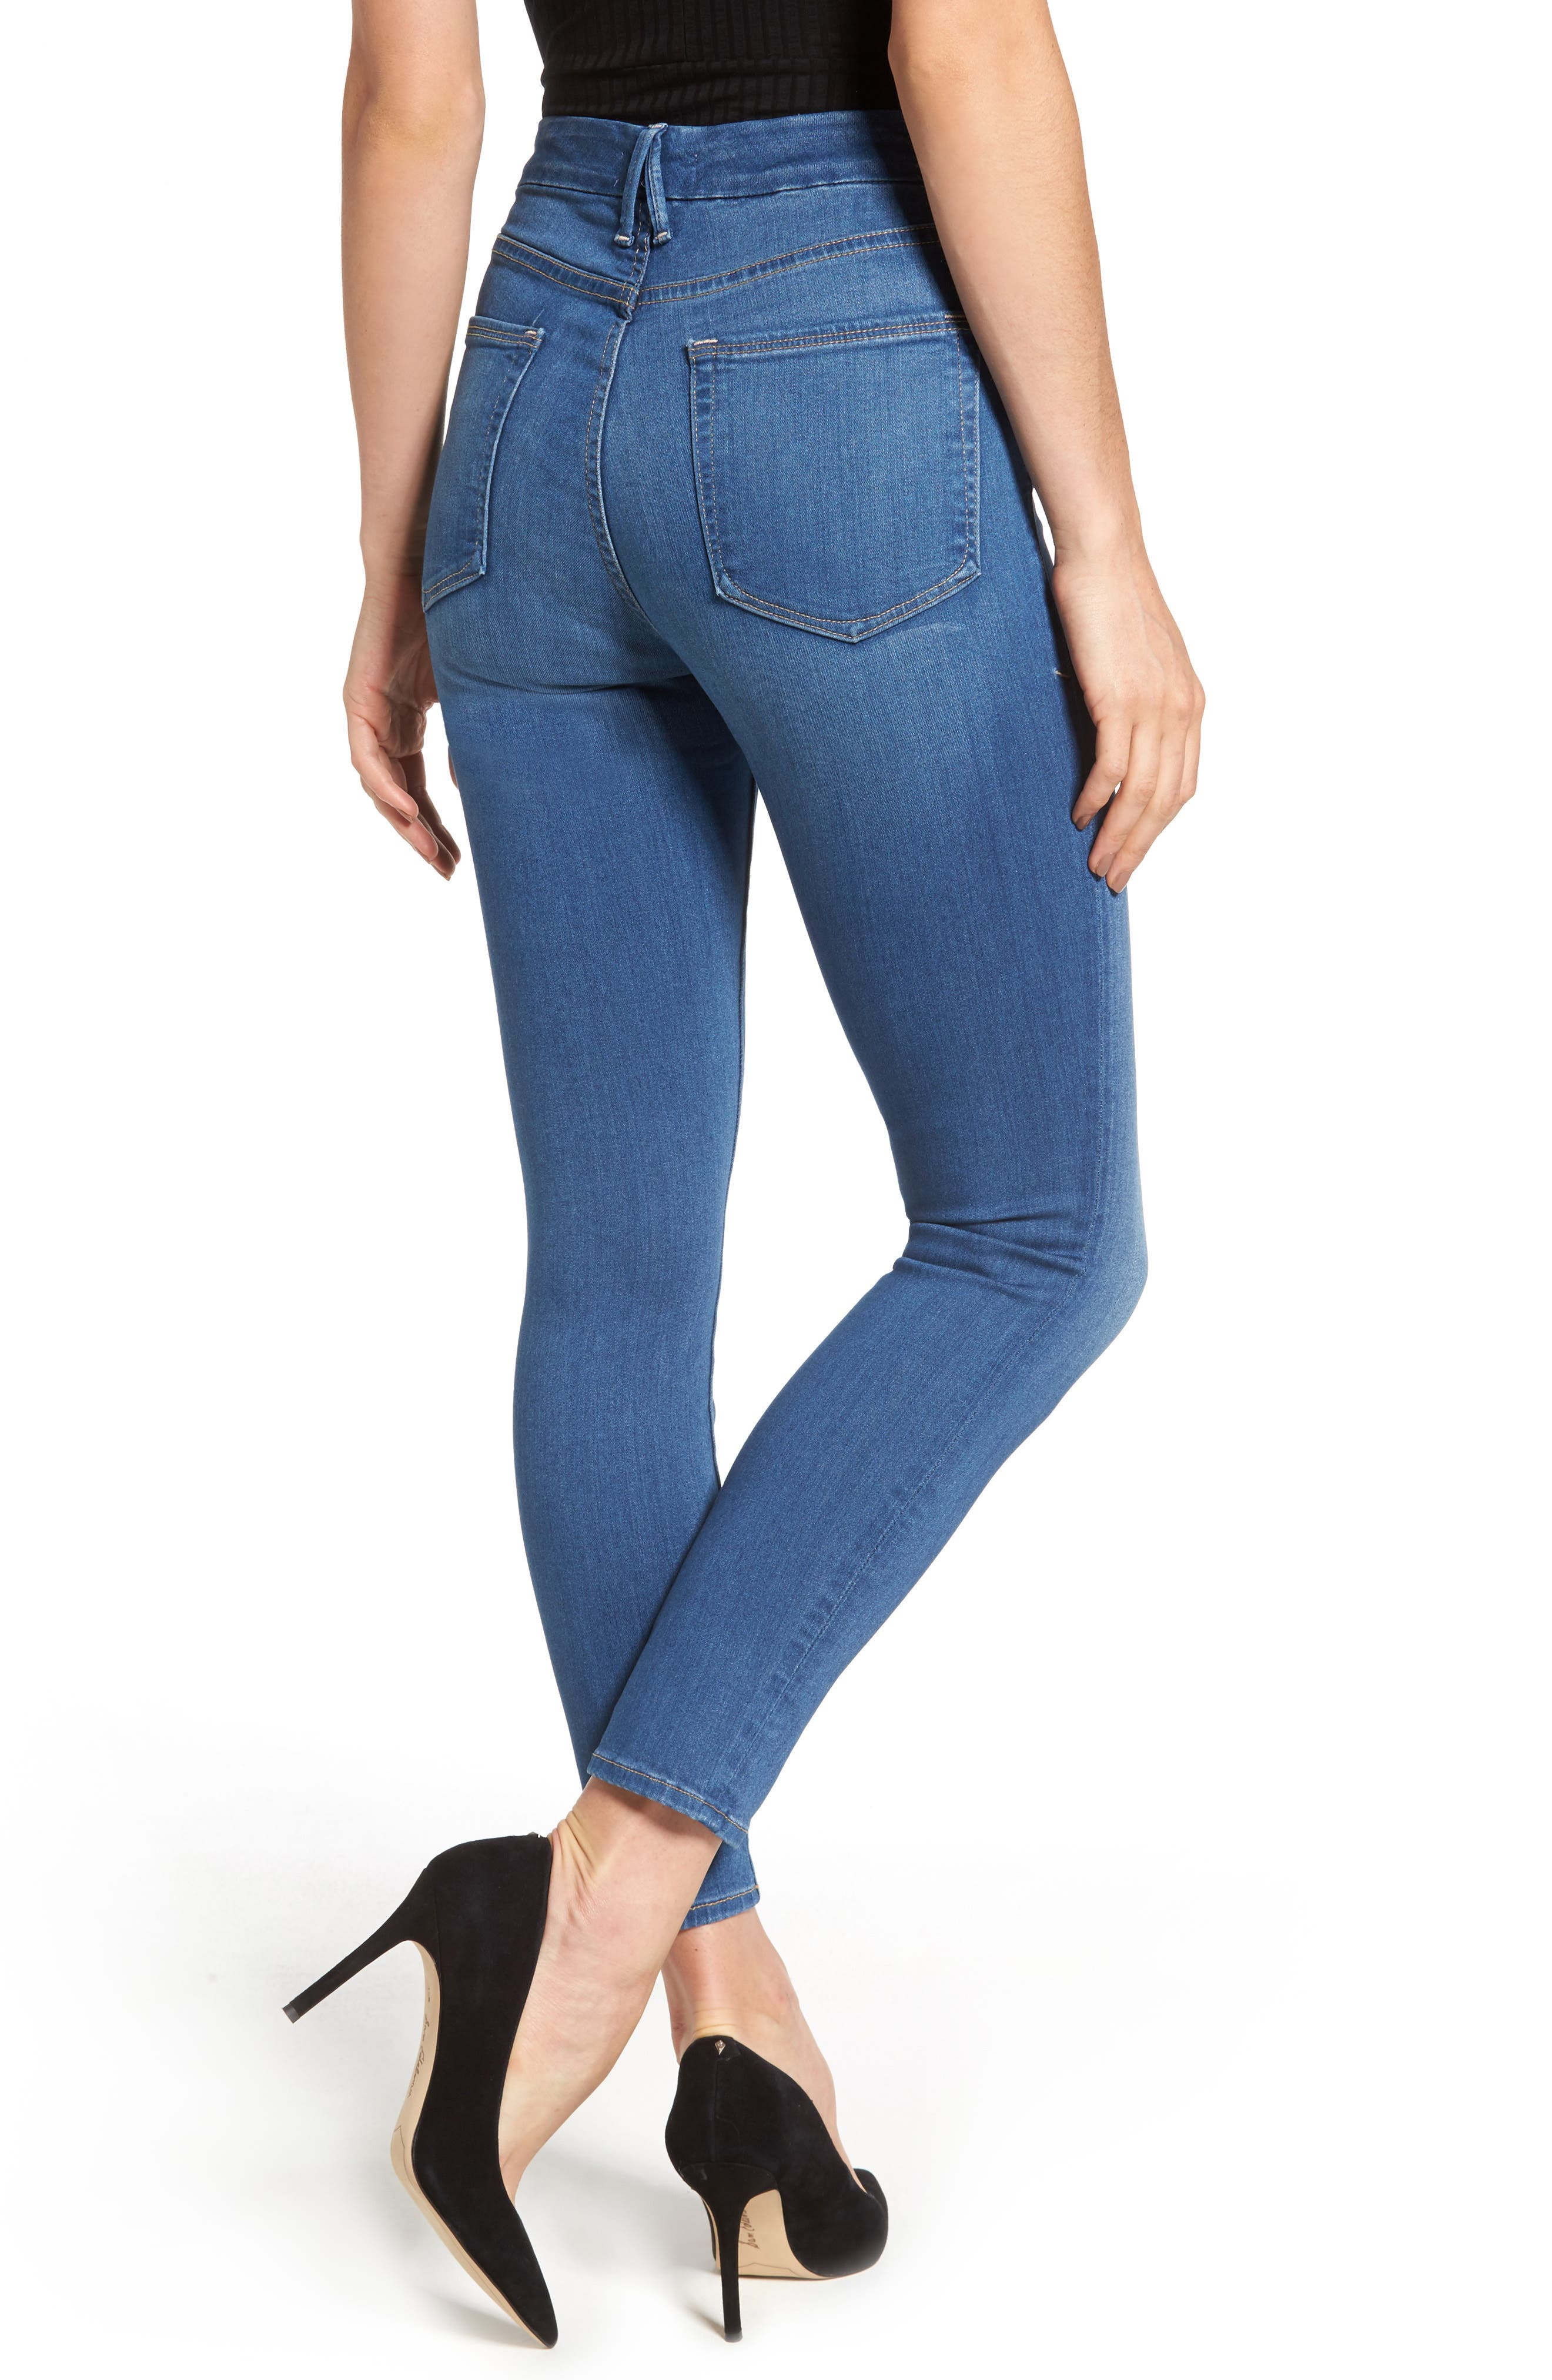 Alternate Image 2  - Good American Good Waist High Waist Crop Skinny Jeans (Blue 056) (Extended Sizes)